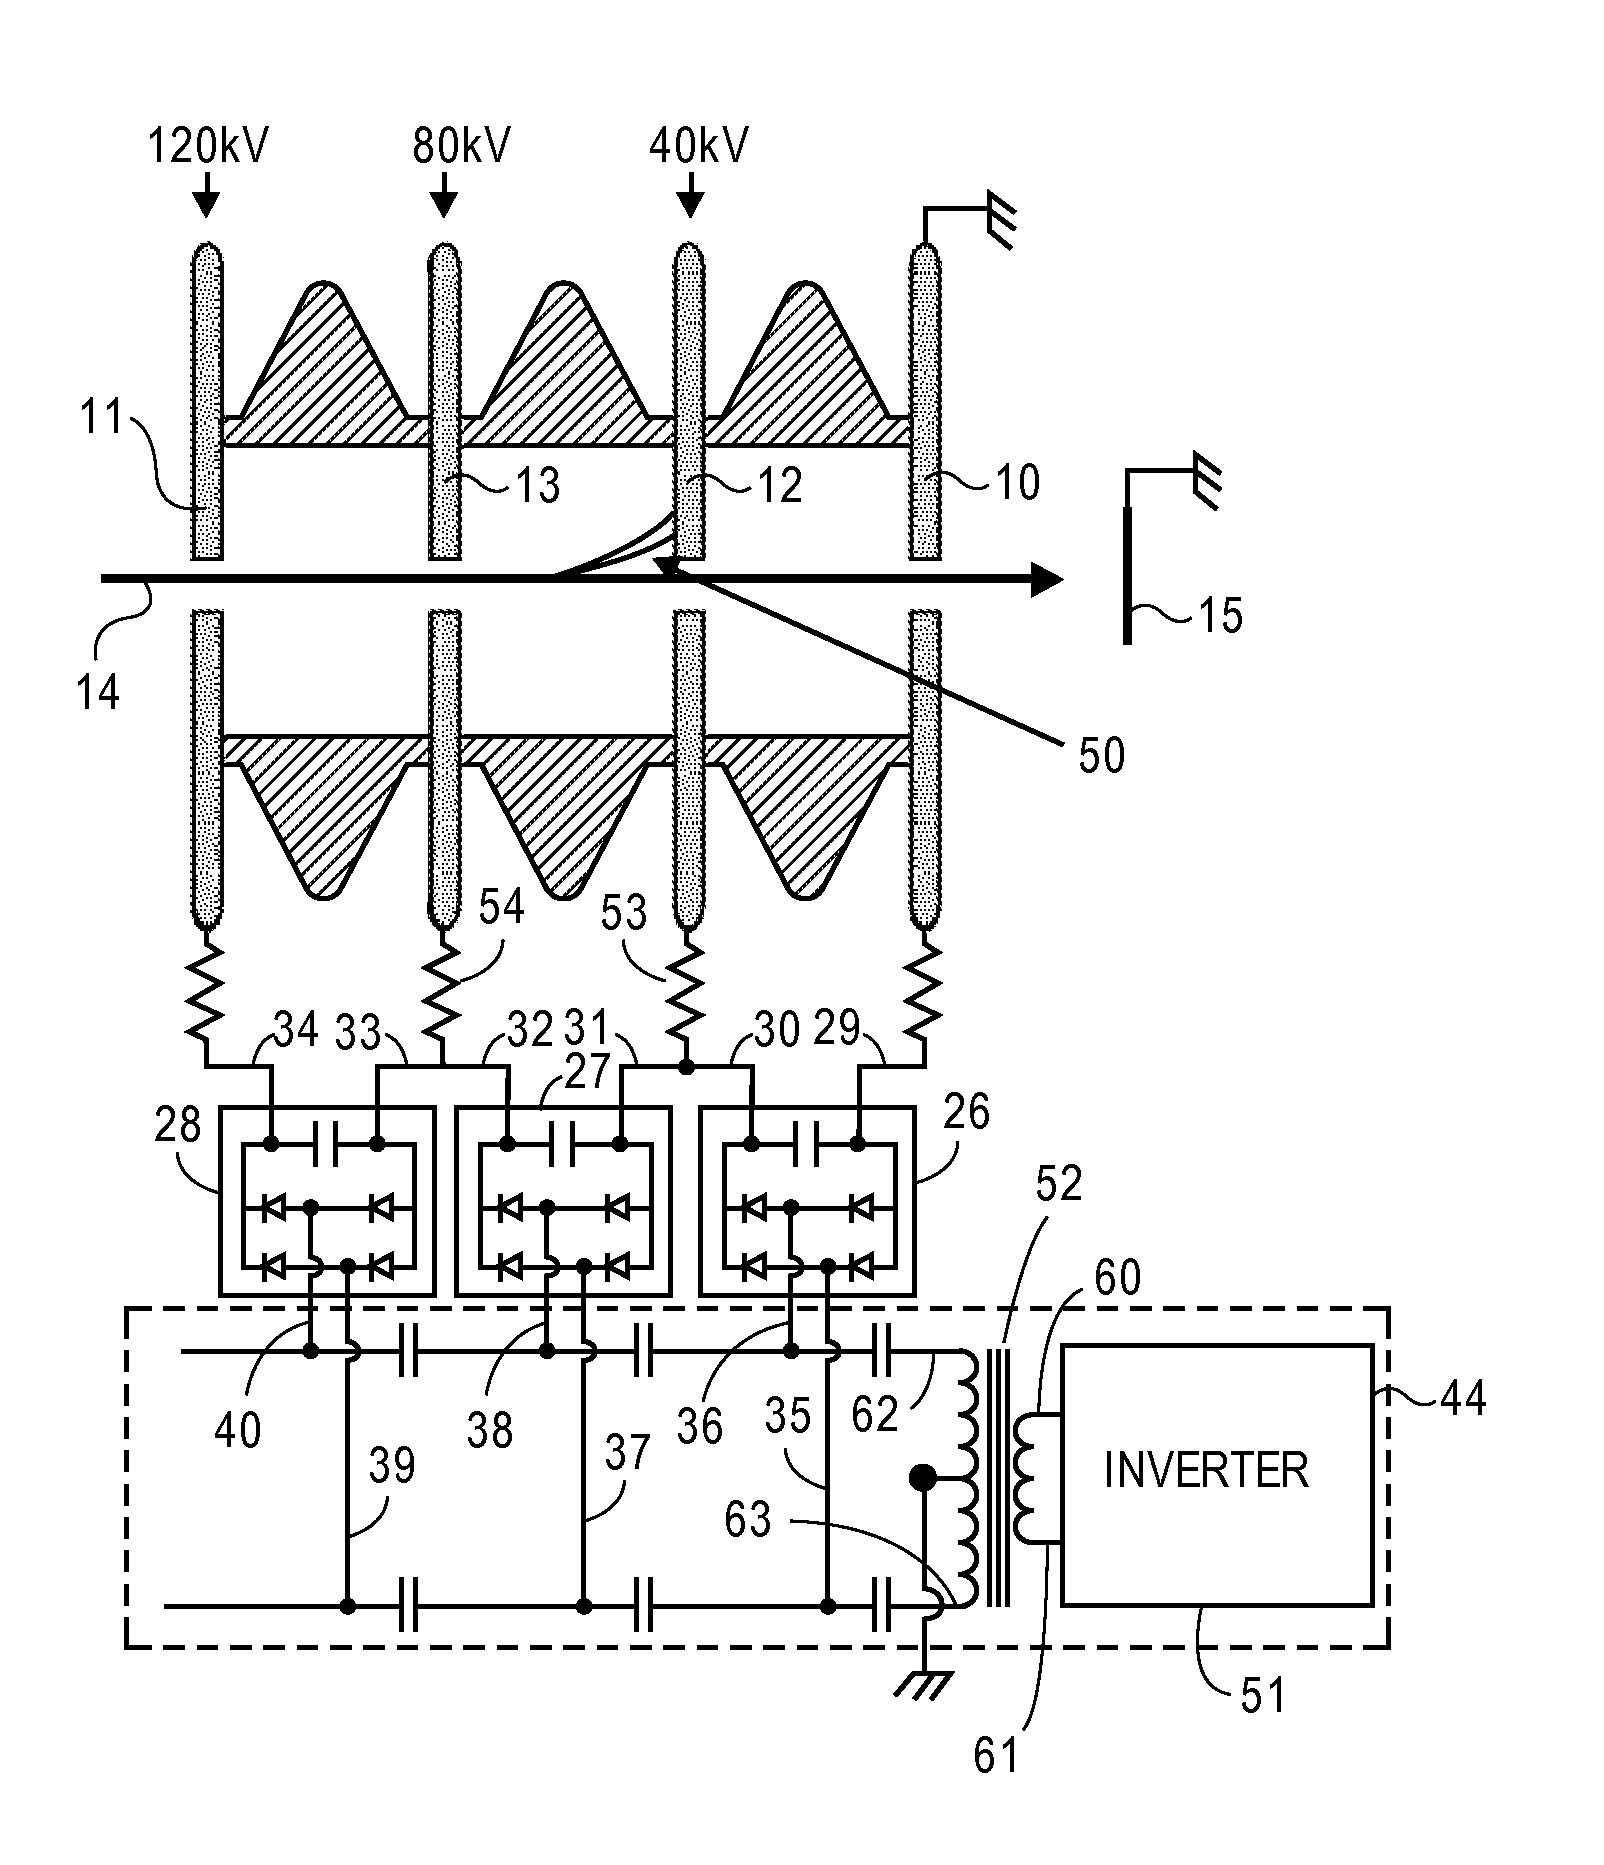 Analytics For Us Patent No 8723452 Dc Charged Particle Voltage Multipliers Walton Type Multiplier Circuit The Described Embodiment Enables An Ion Beam To Be Accelerated High Energies And Currents